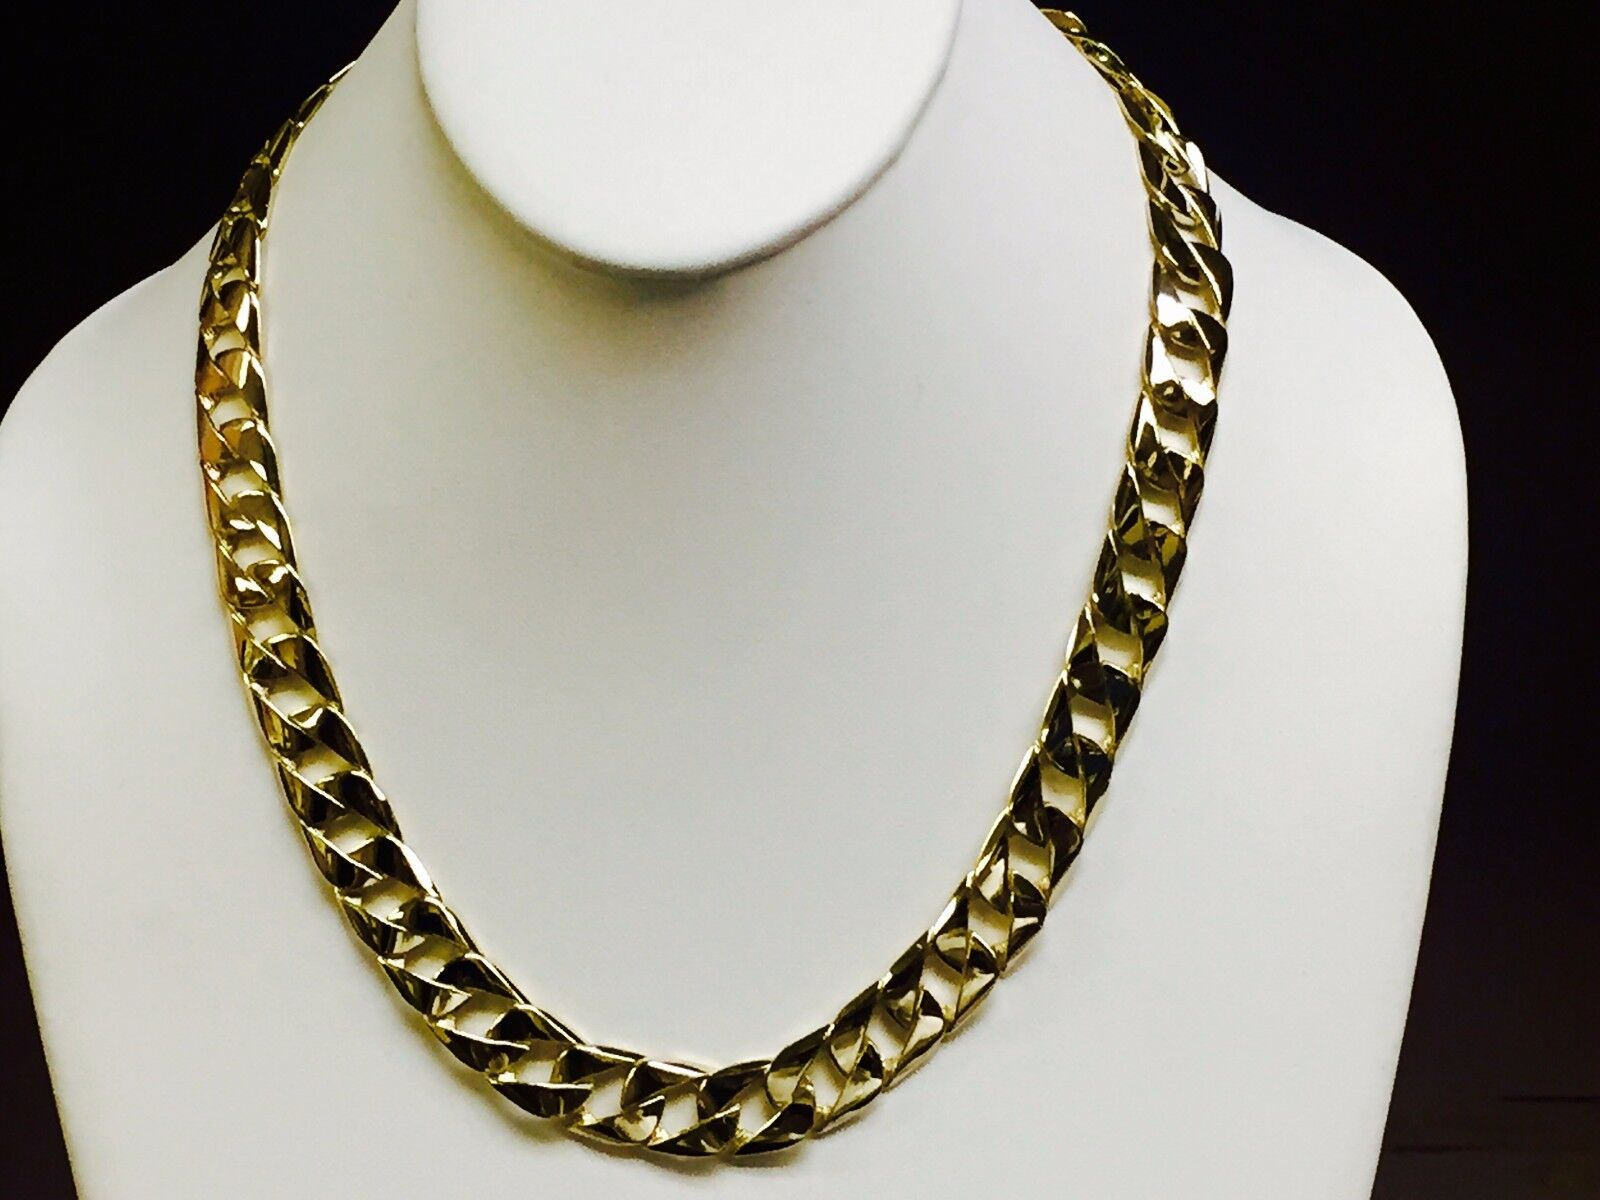 10kt Solid Gold Handmade Curb Link Mens Chain Necklace 20